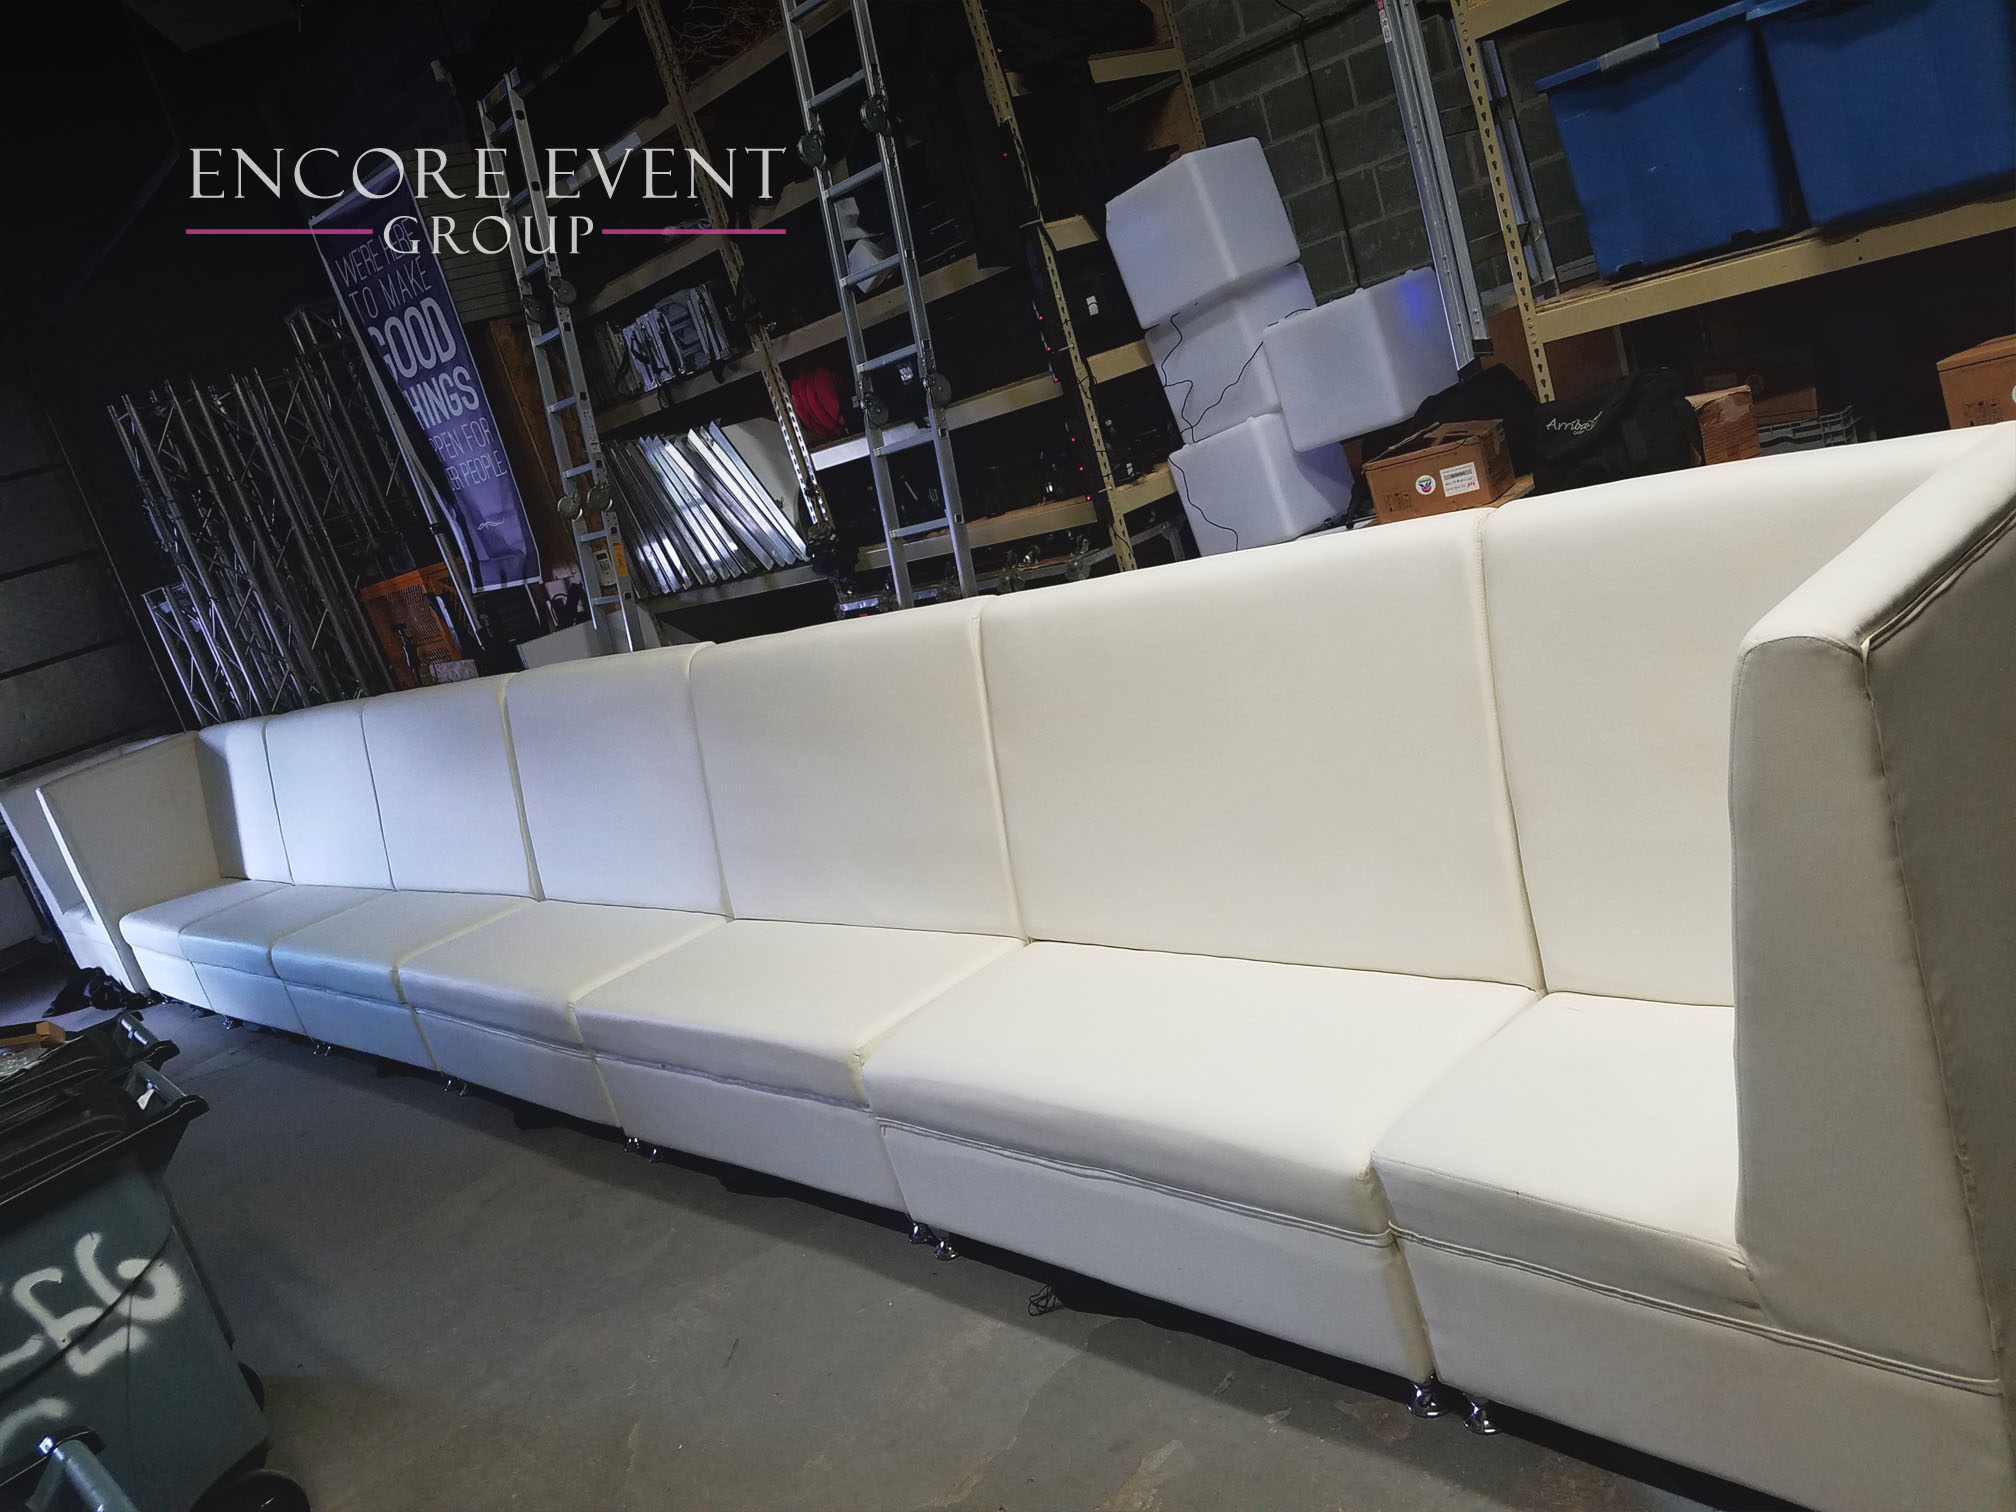 chair rental detroit revolving luxury michigan white lounge furniture rentals couches thrones